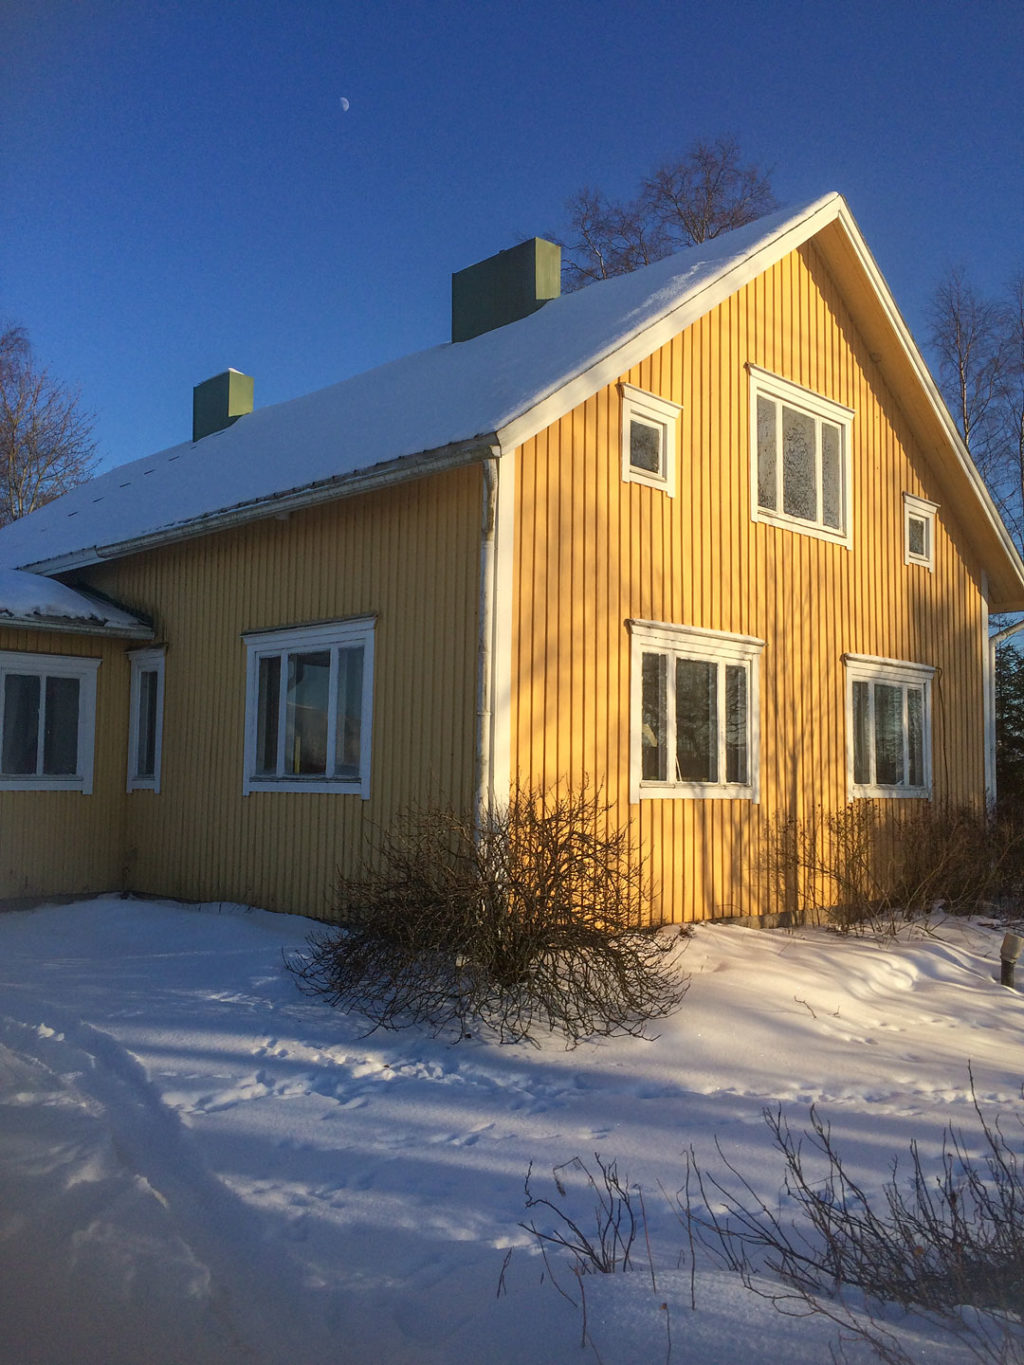 Roots aka Where Your Taste in Home Decor Comes from